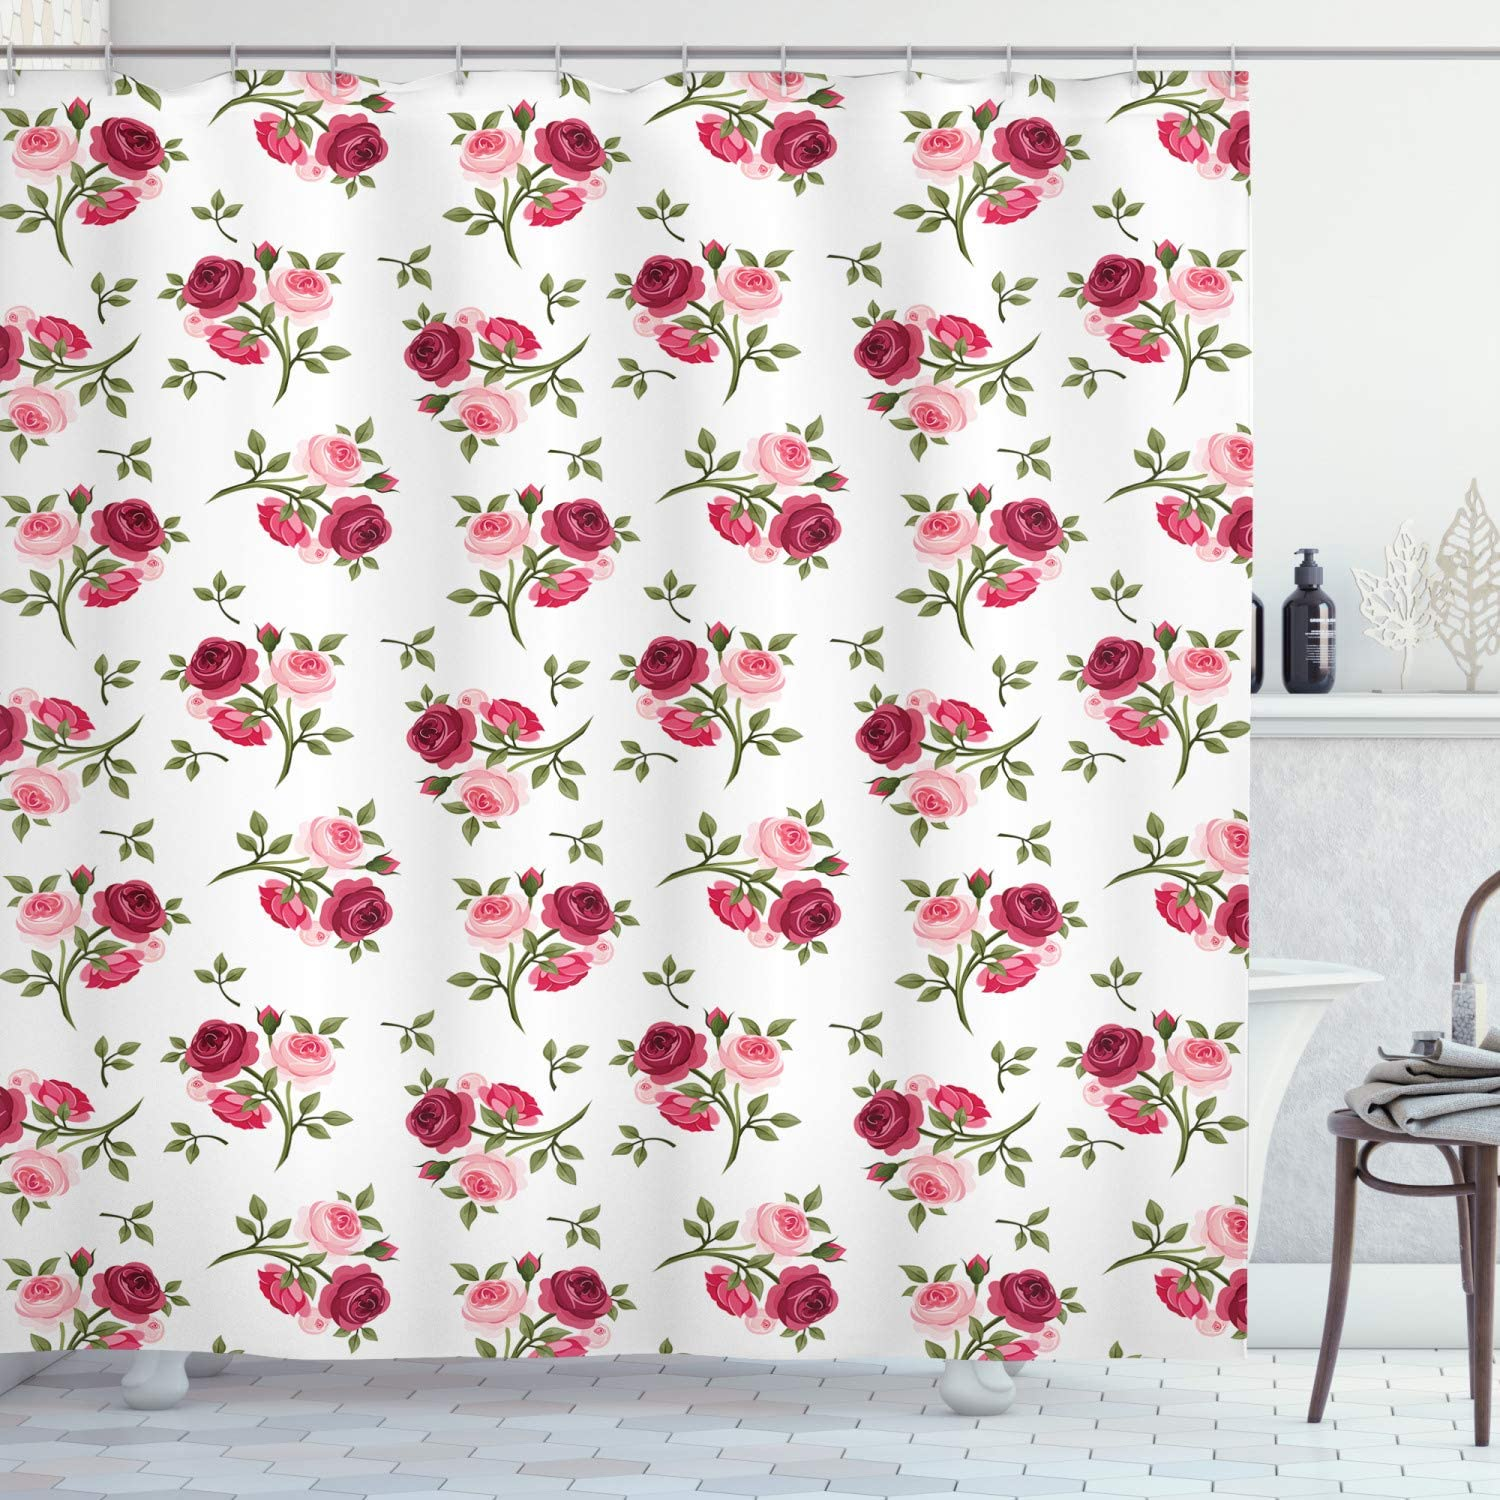 """Ambesonne Rose Shower Curtain, Pattern with Rose Stems Flowers Garden Classic English Style Design Print, Cloth Fabric Bathroom Decor Set with Hooks, 75"""" Long, Pink Fern"""